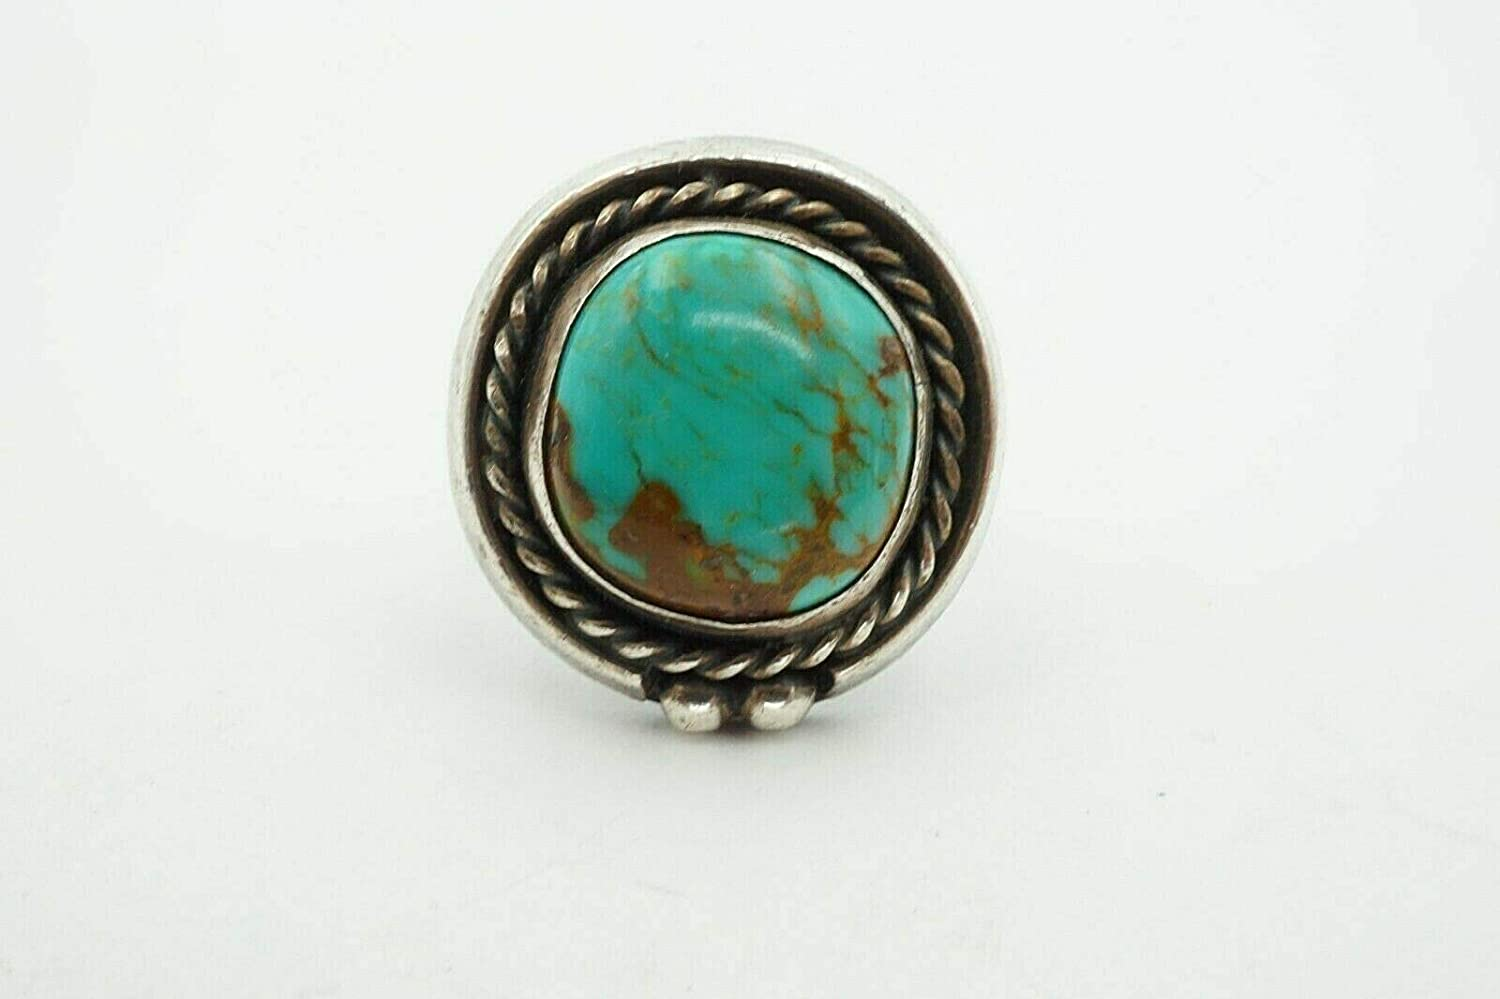 Vintage Sterling Silver Turquoise Statement Ring Size 8